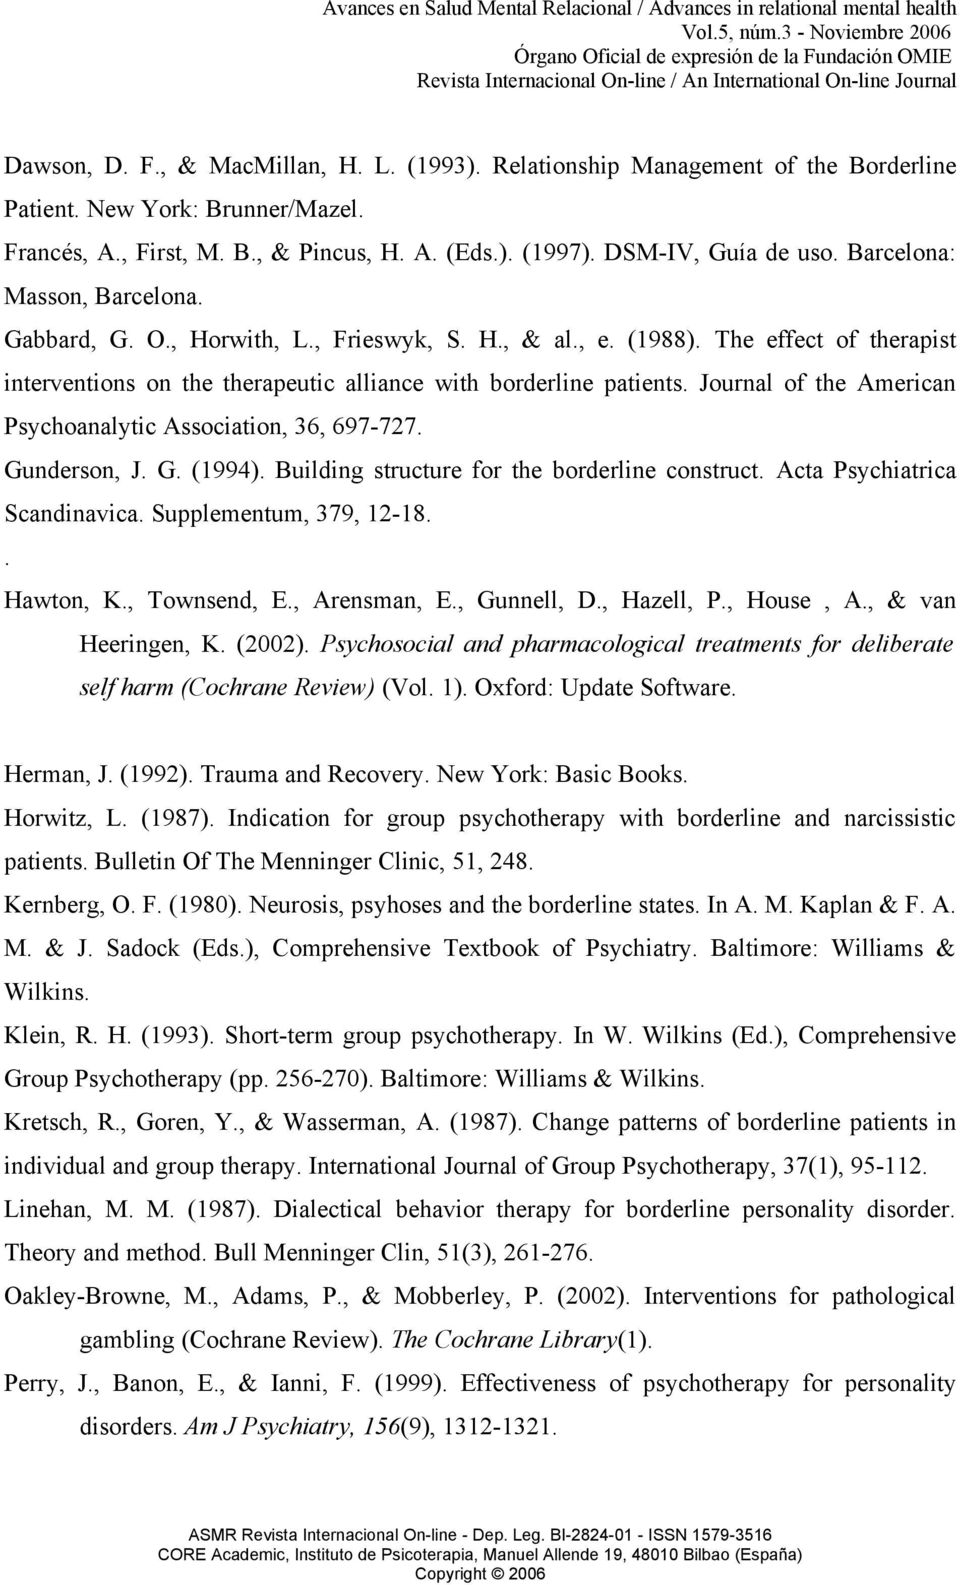 Journal of the American Psychoanalytic Association, 36, 697-727. Gunderson, J. G. (1994). Building structure for the borderline construct. Acta Psychiatrica Scandinavica. Supplementum, 379, 12-18.